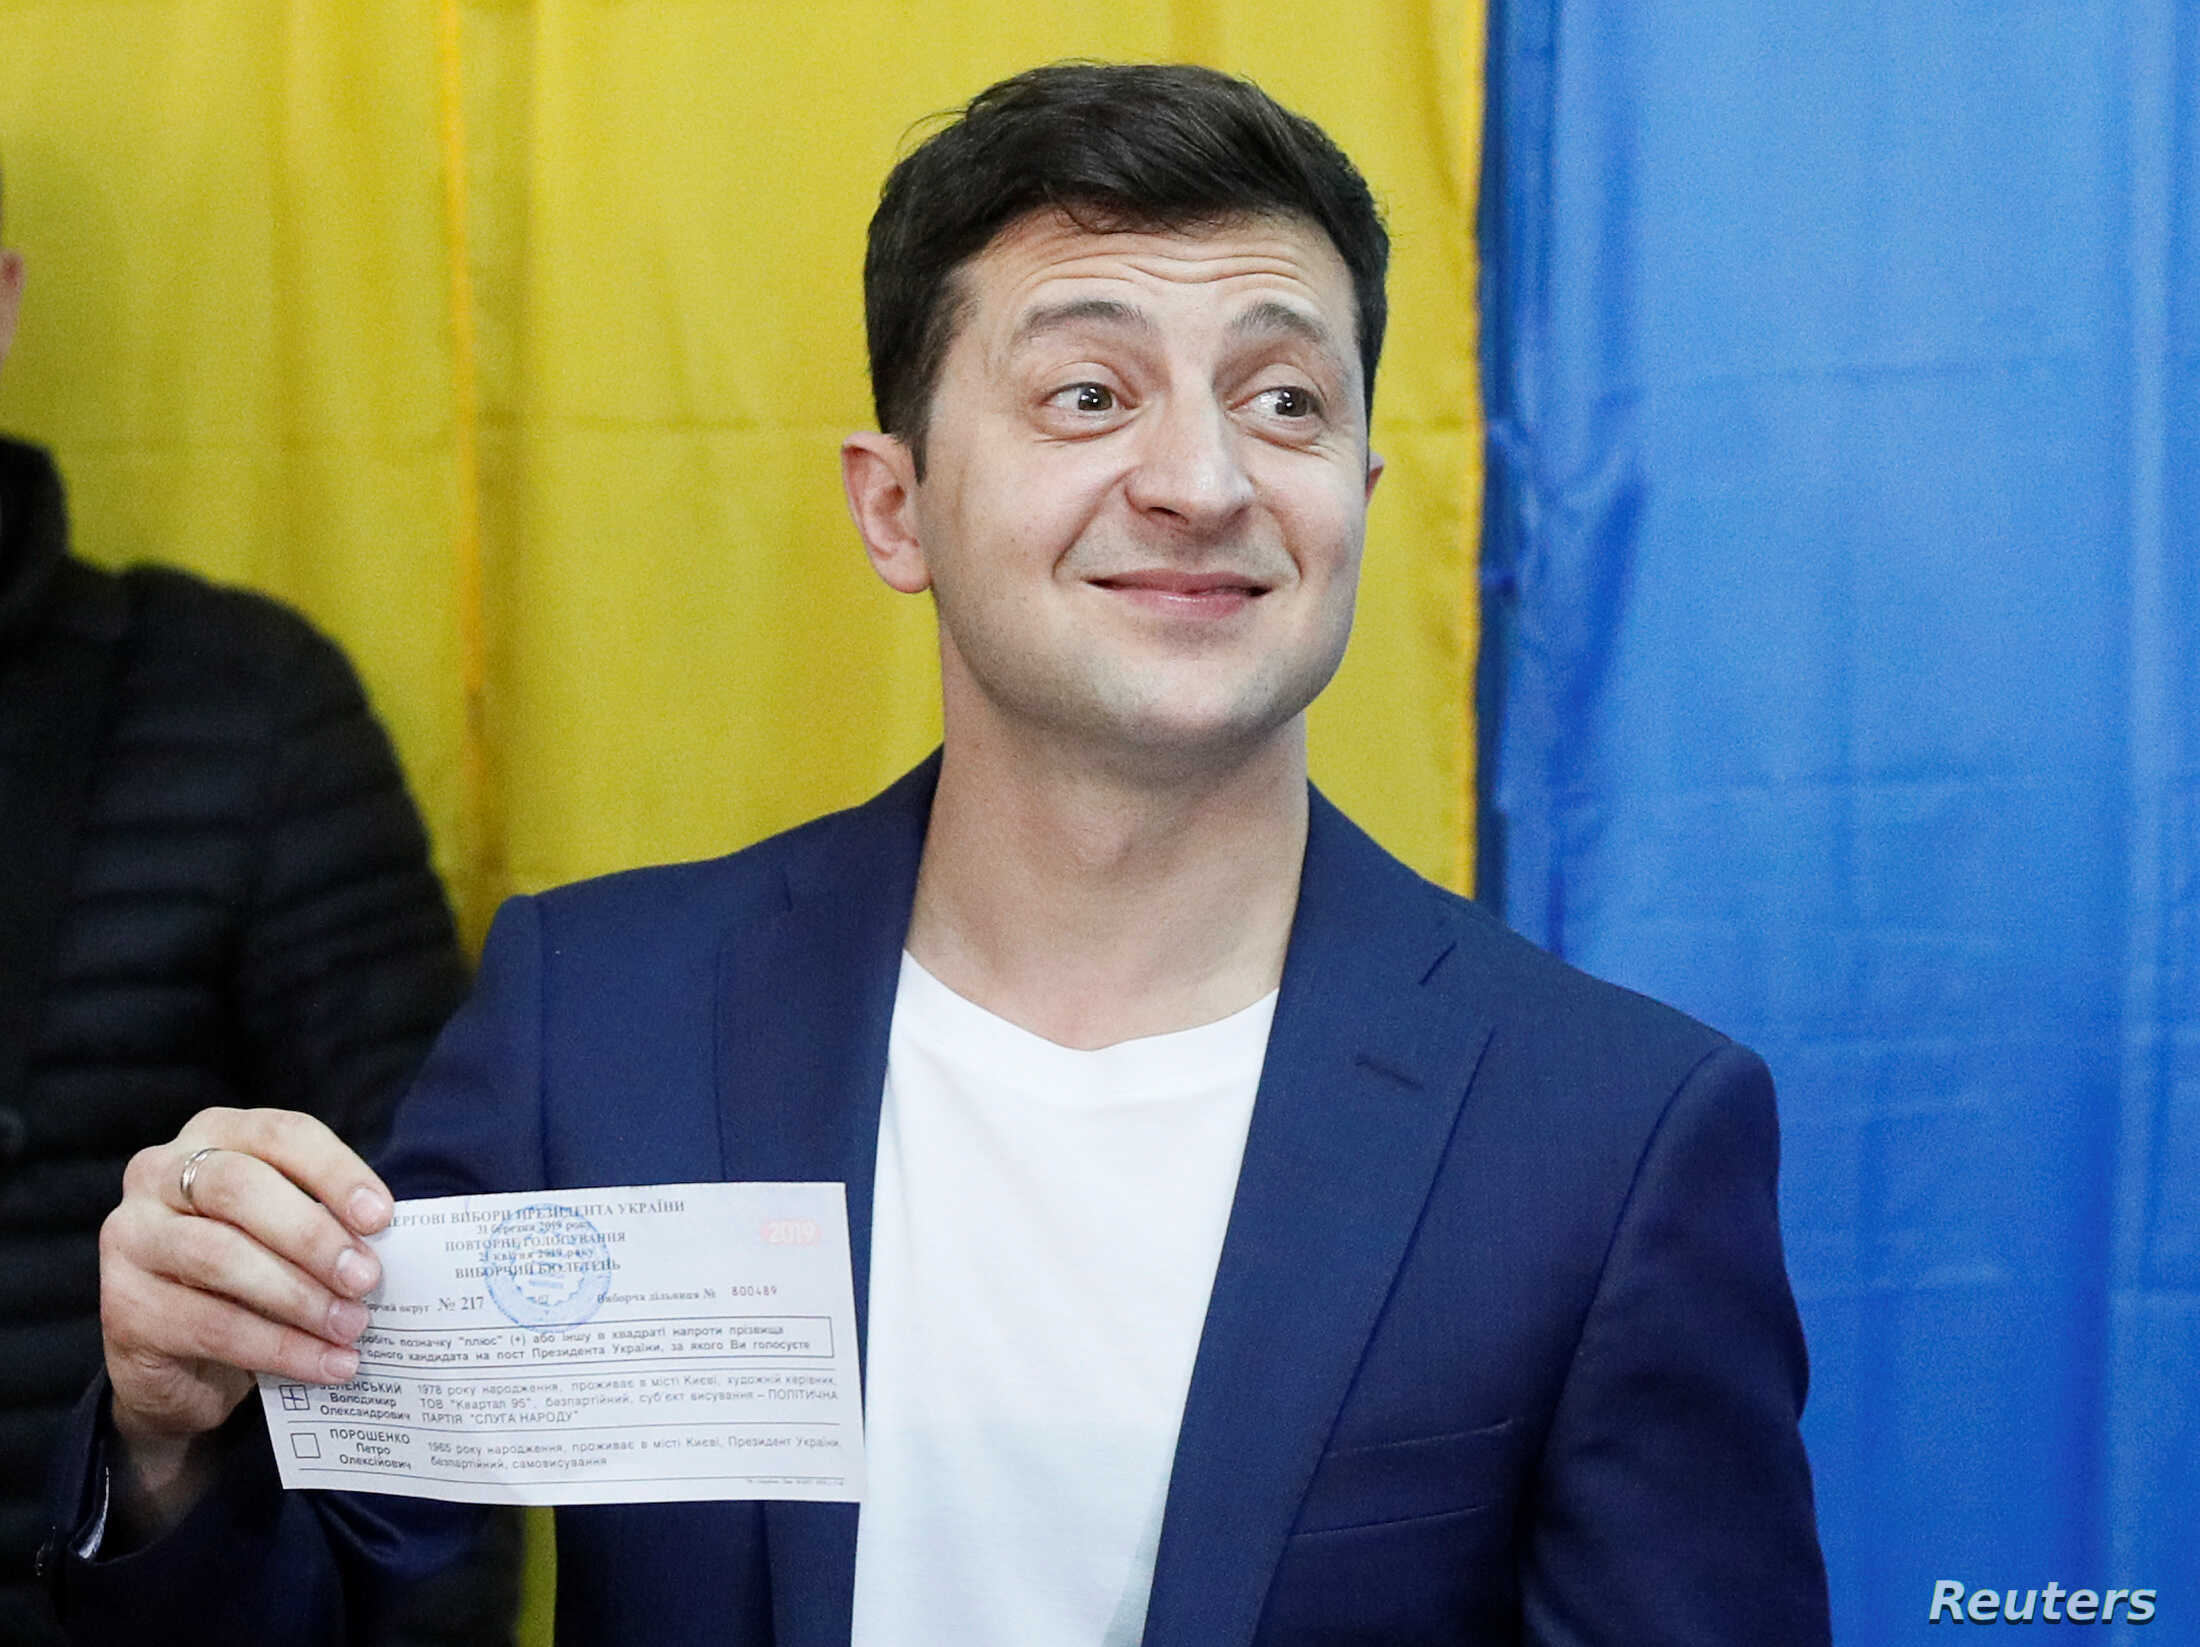 Ukrainian presidential candidate Volodymyr Zelenskiy holds up his ballot while standing in front of the media at a polling station during the second round of a presidential election in Kyiv, Ukraine, April 21, 2019.